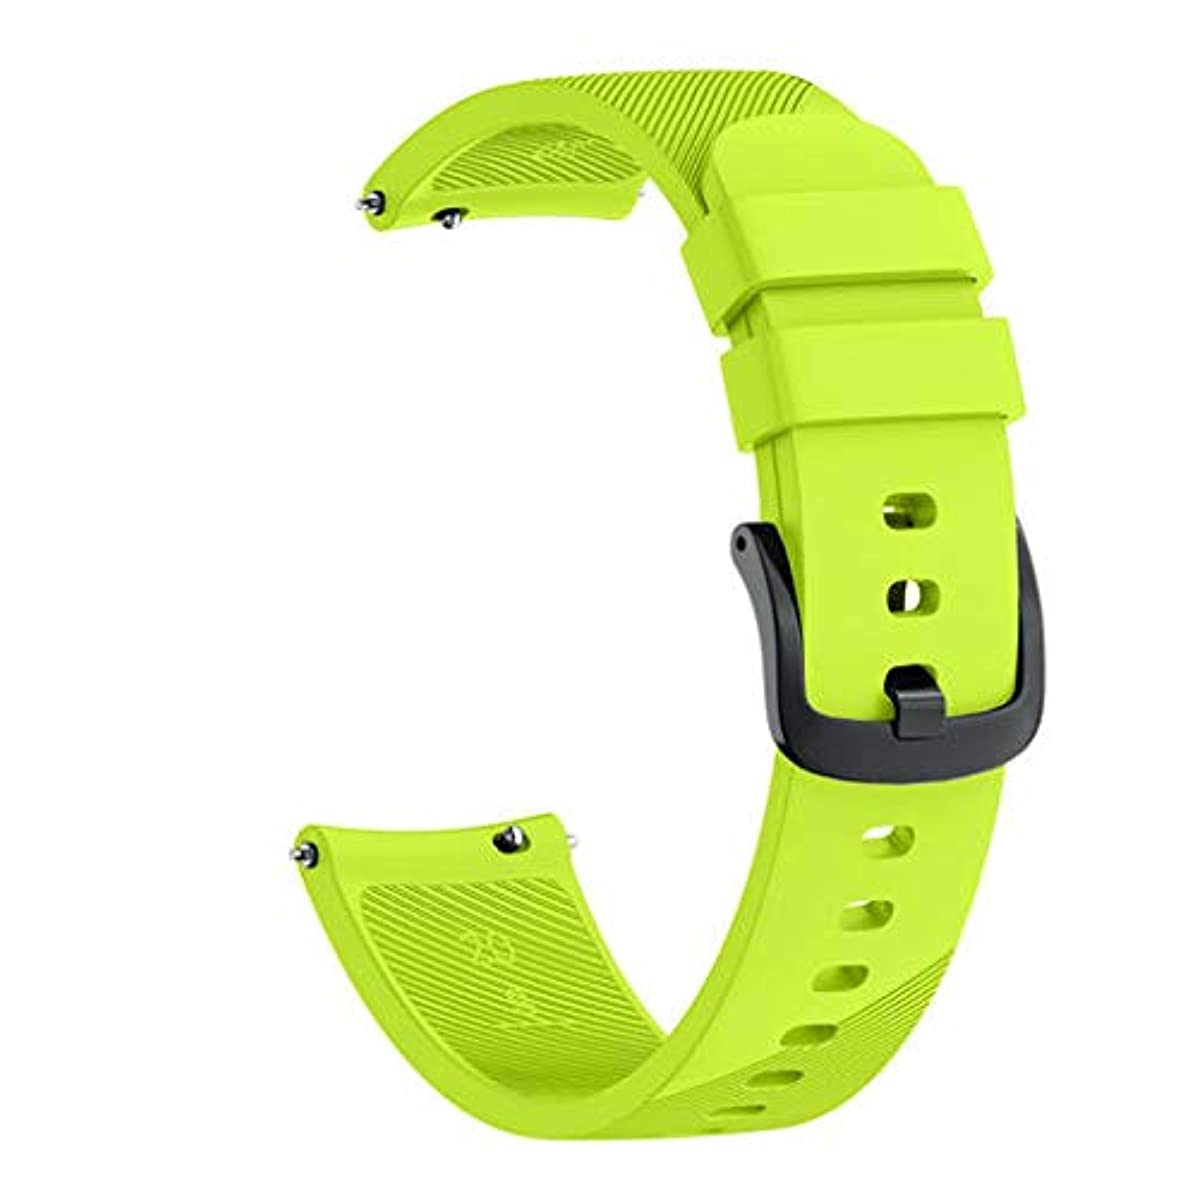 Junshion New Sport Soft Silicone Replacement Wristband Wrist Strap for Samsung Gear Sport Watch Band Strap for Men Woman